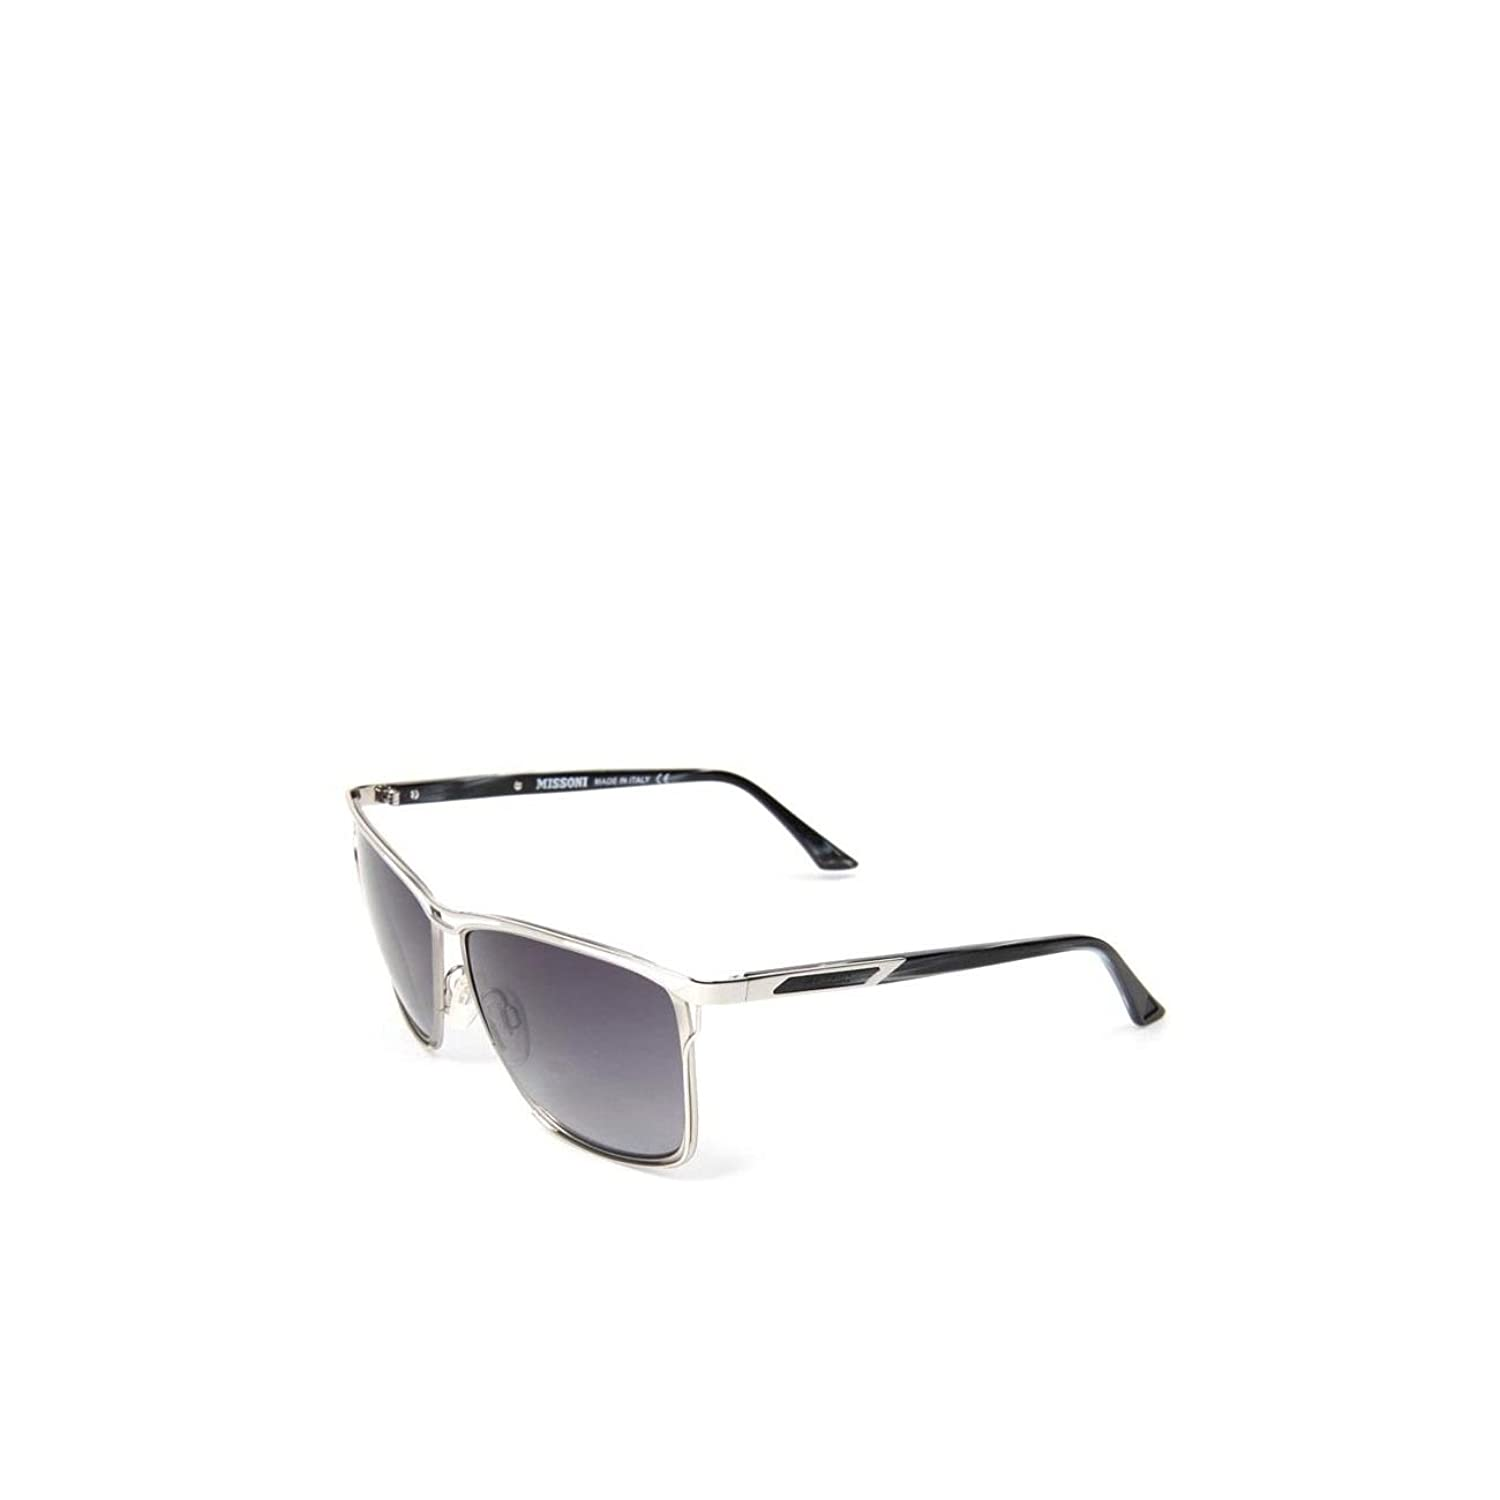 c3ed0245dca6f2 ray ban erika polarisé Missoni ladies sunglasses MI70004   Shop ray ...